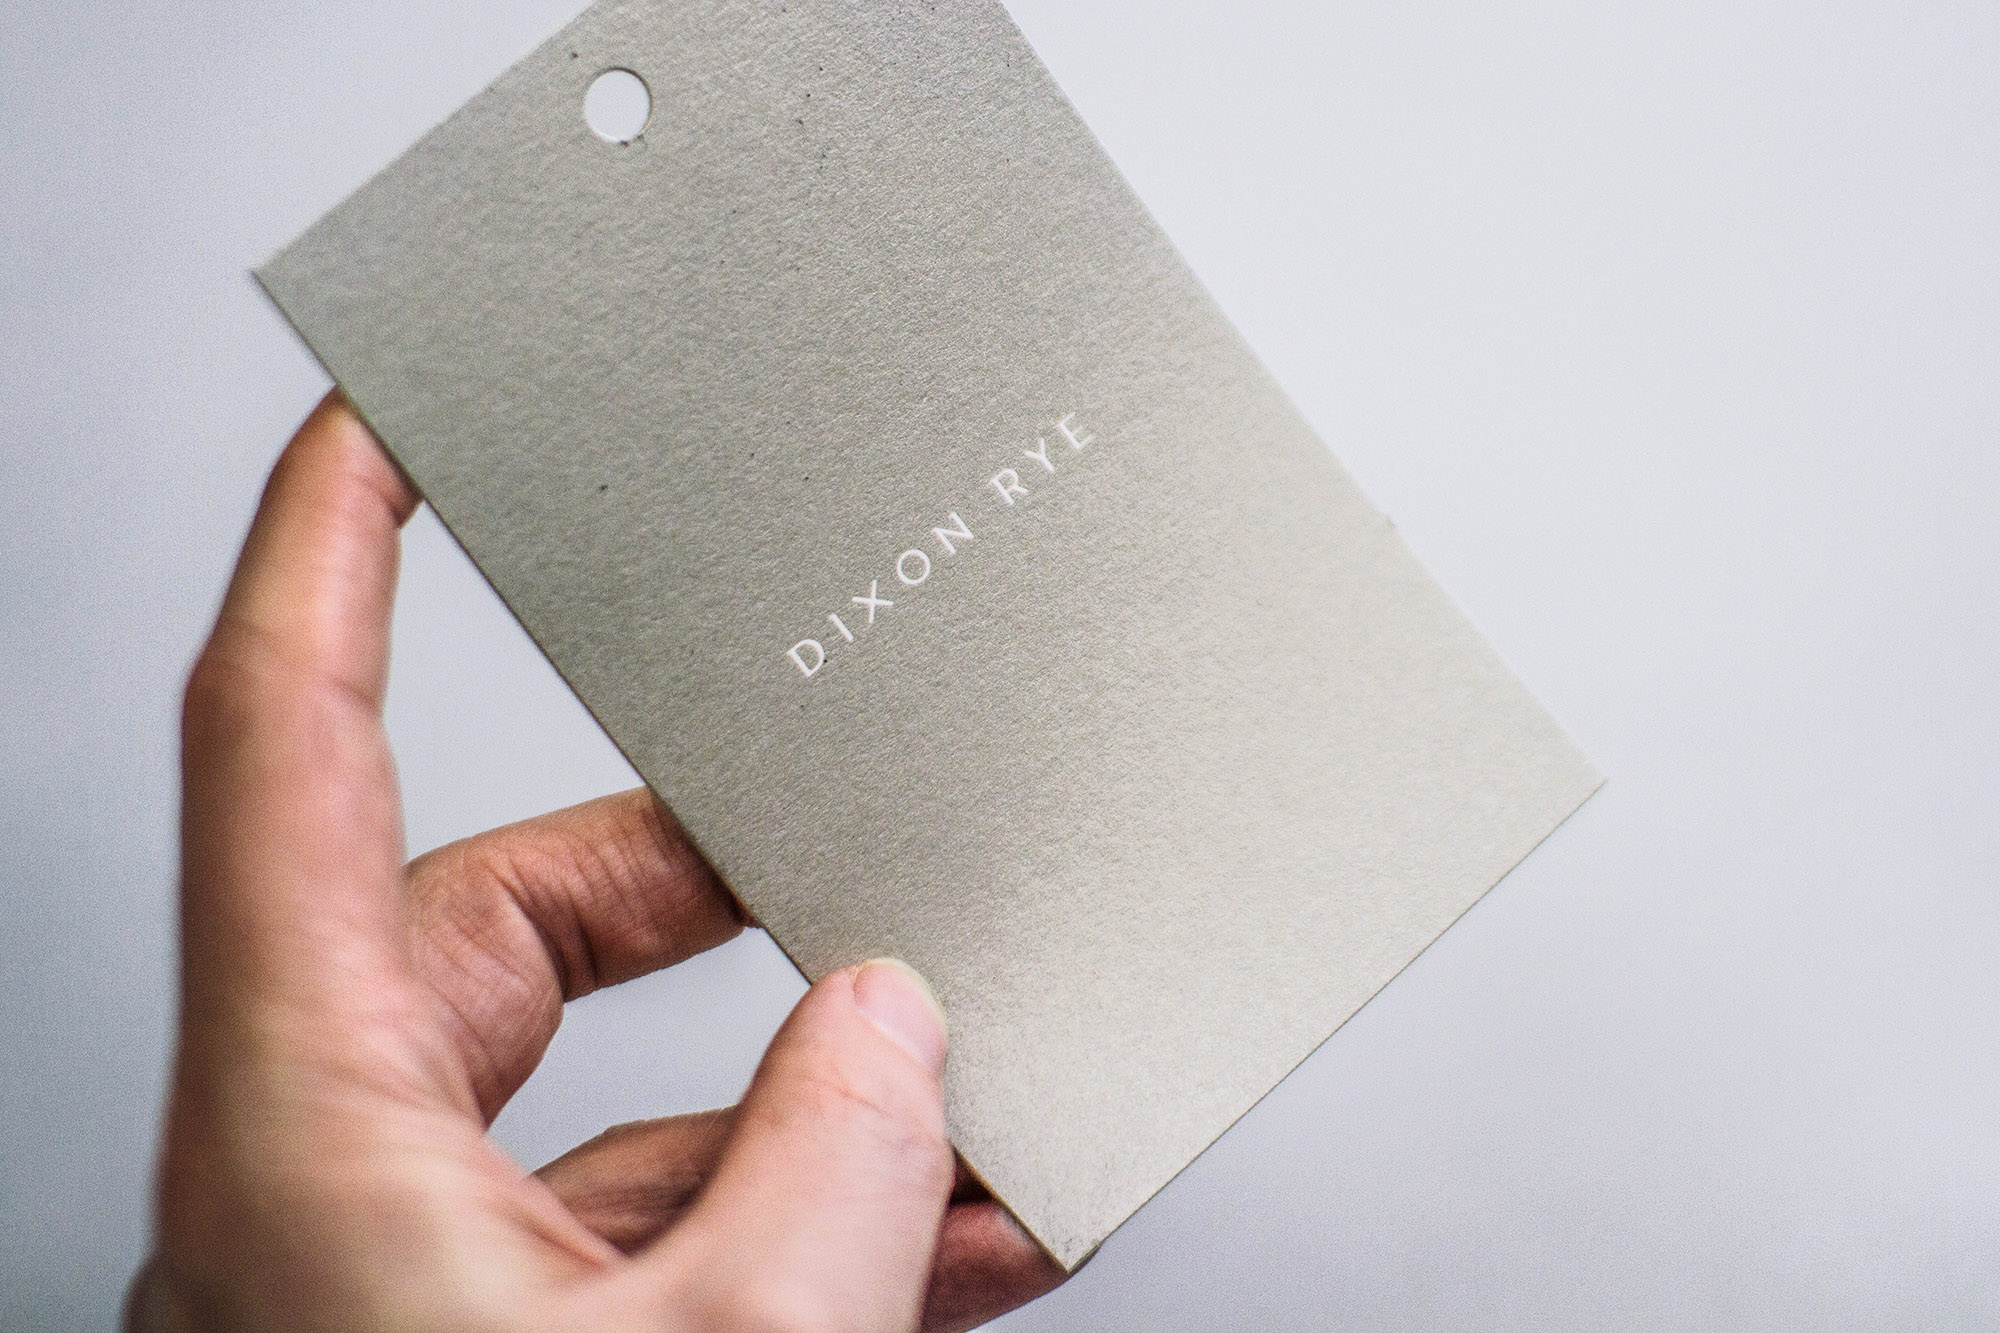 White logo on metallic silver screen printed custom hang tag for Dixon Rye Atlanta store sign and product tag, one large rectangle tag detail